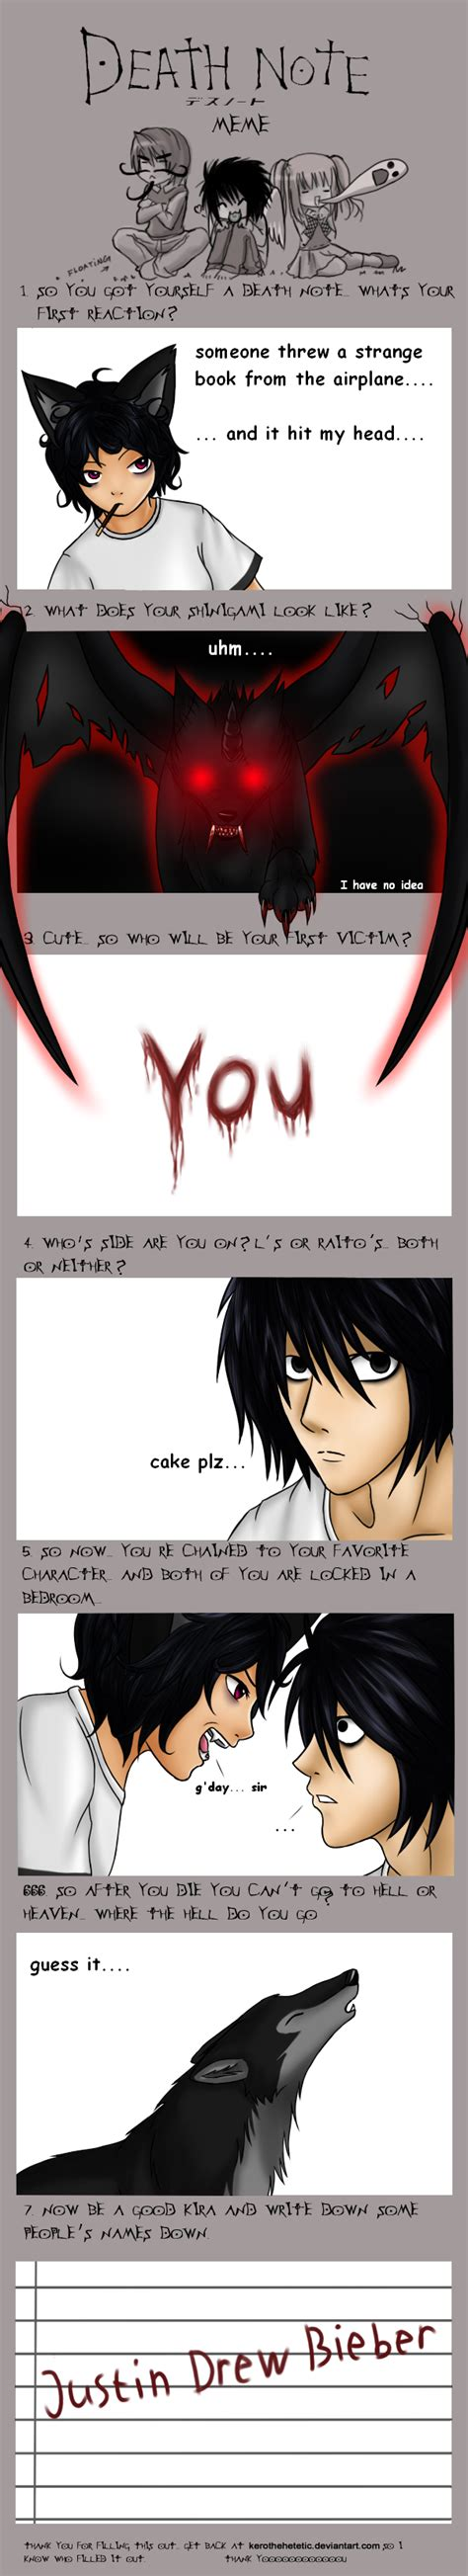 Memes About Death - death note meme by zerieleany on deviantart